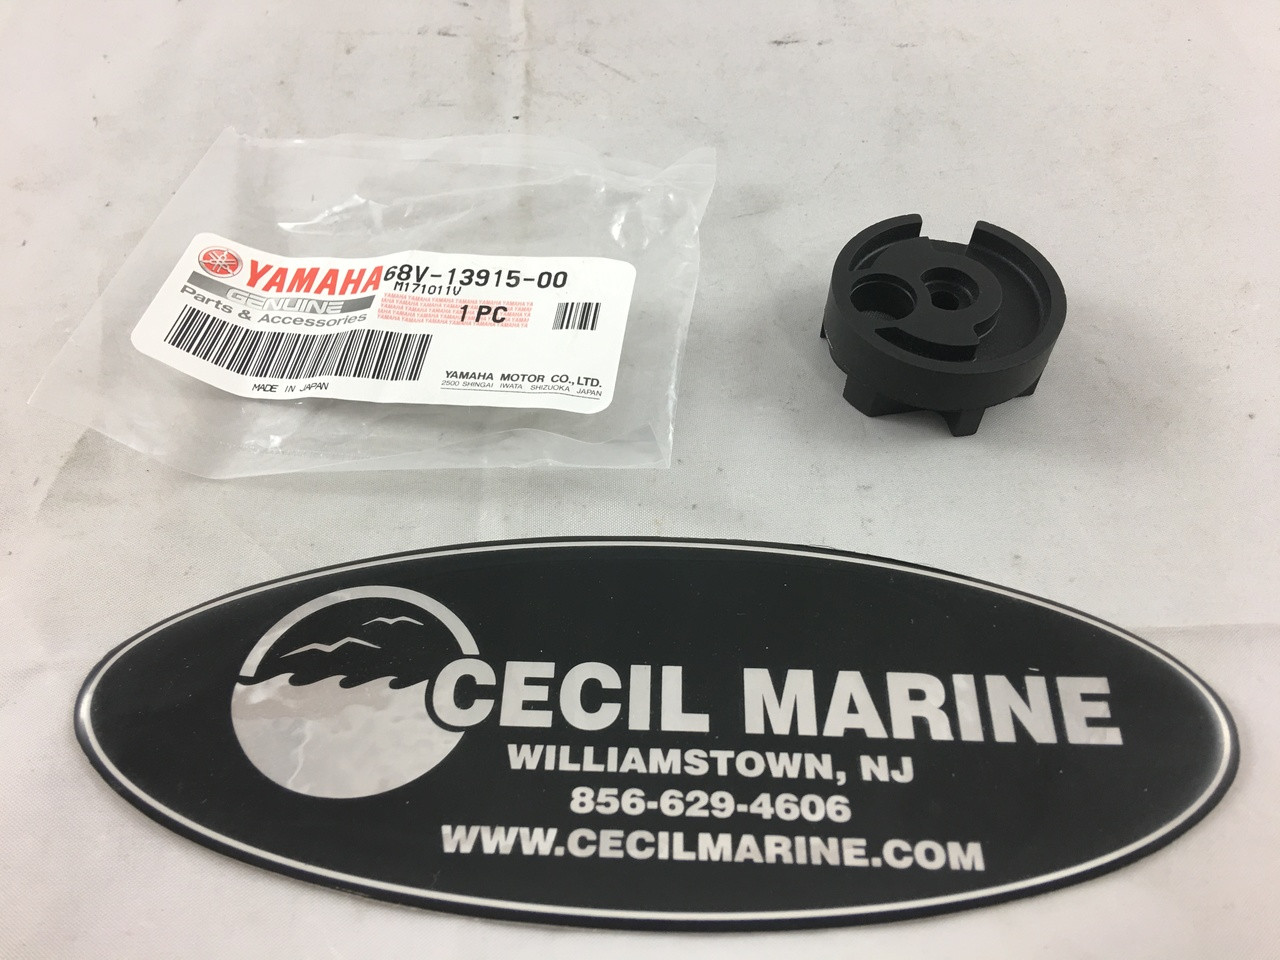 small resolution of  39 45 yamaha fuel filter 68v 13915 00 in stock ready to ship cecil marine